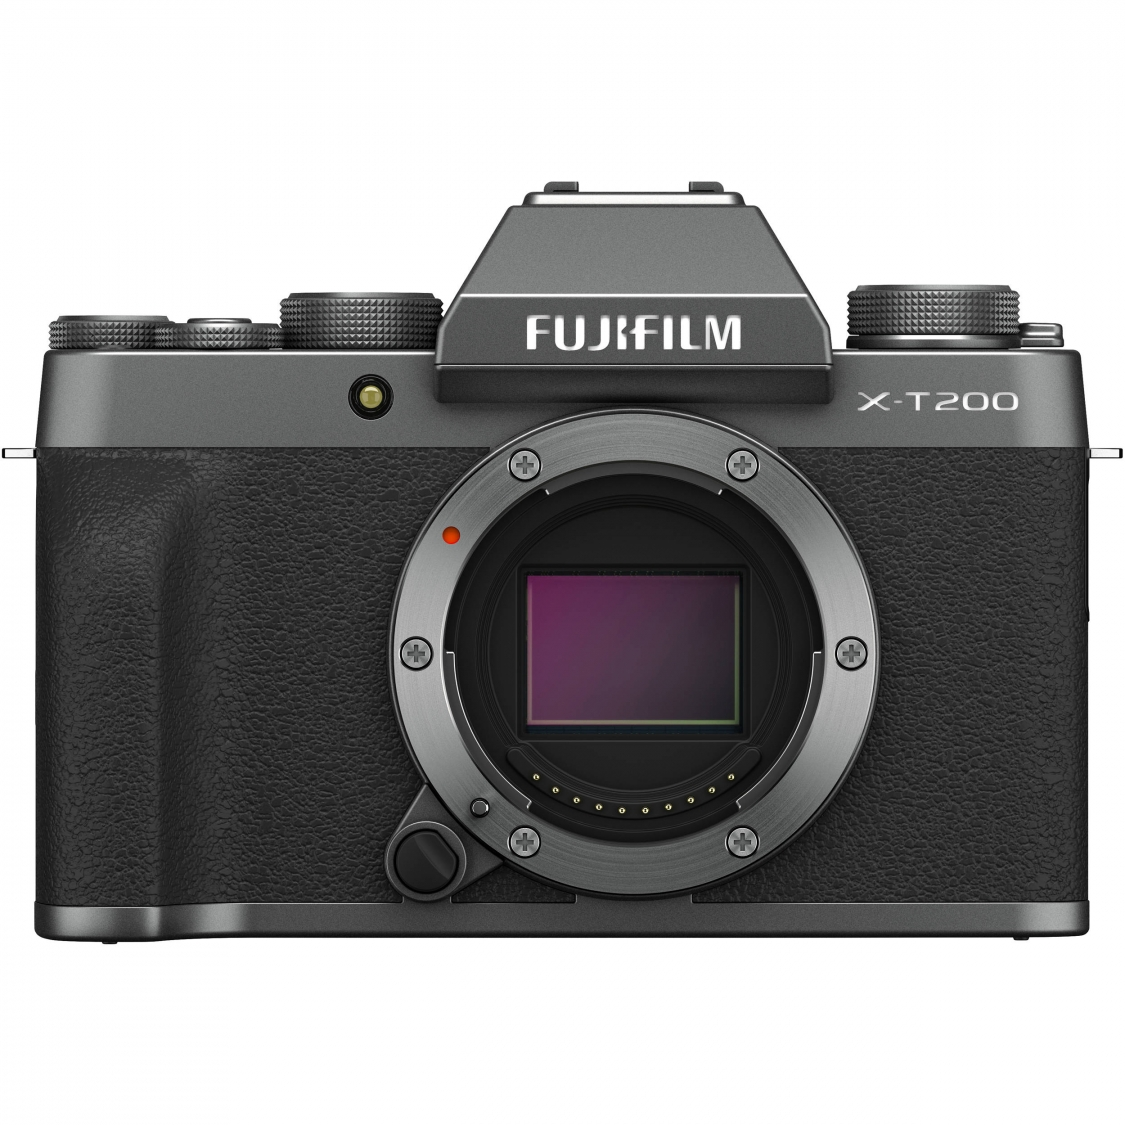 Fujifilm X-T200 Camera Body (Dark Silver)